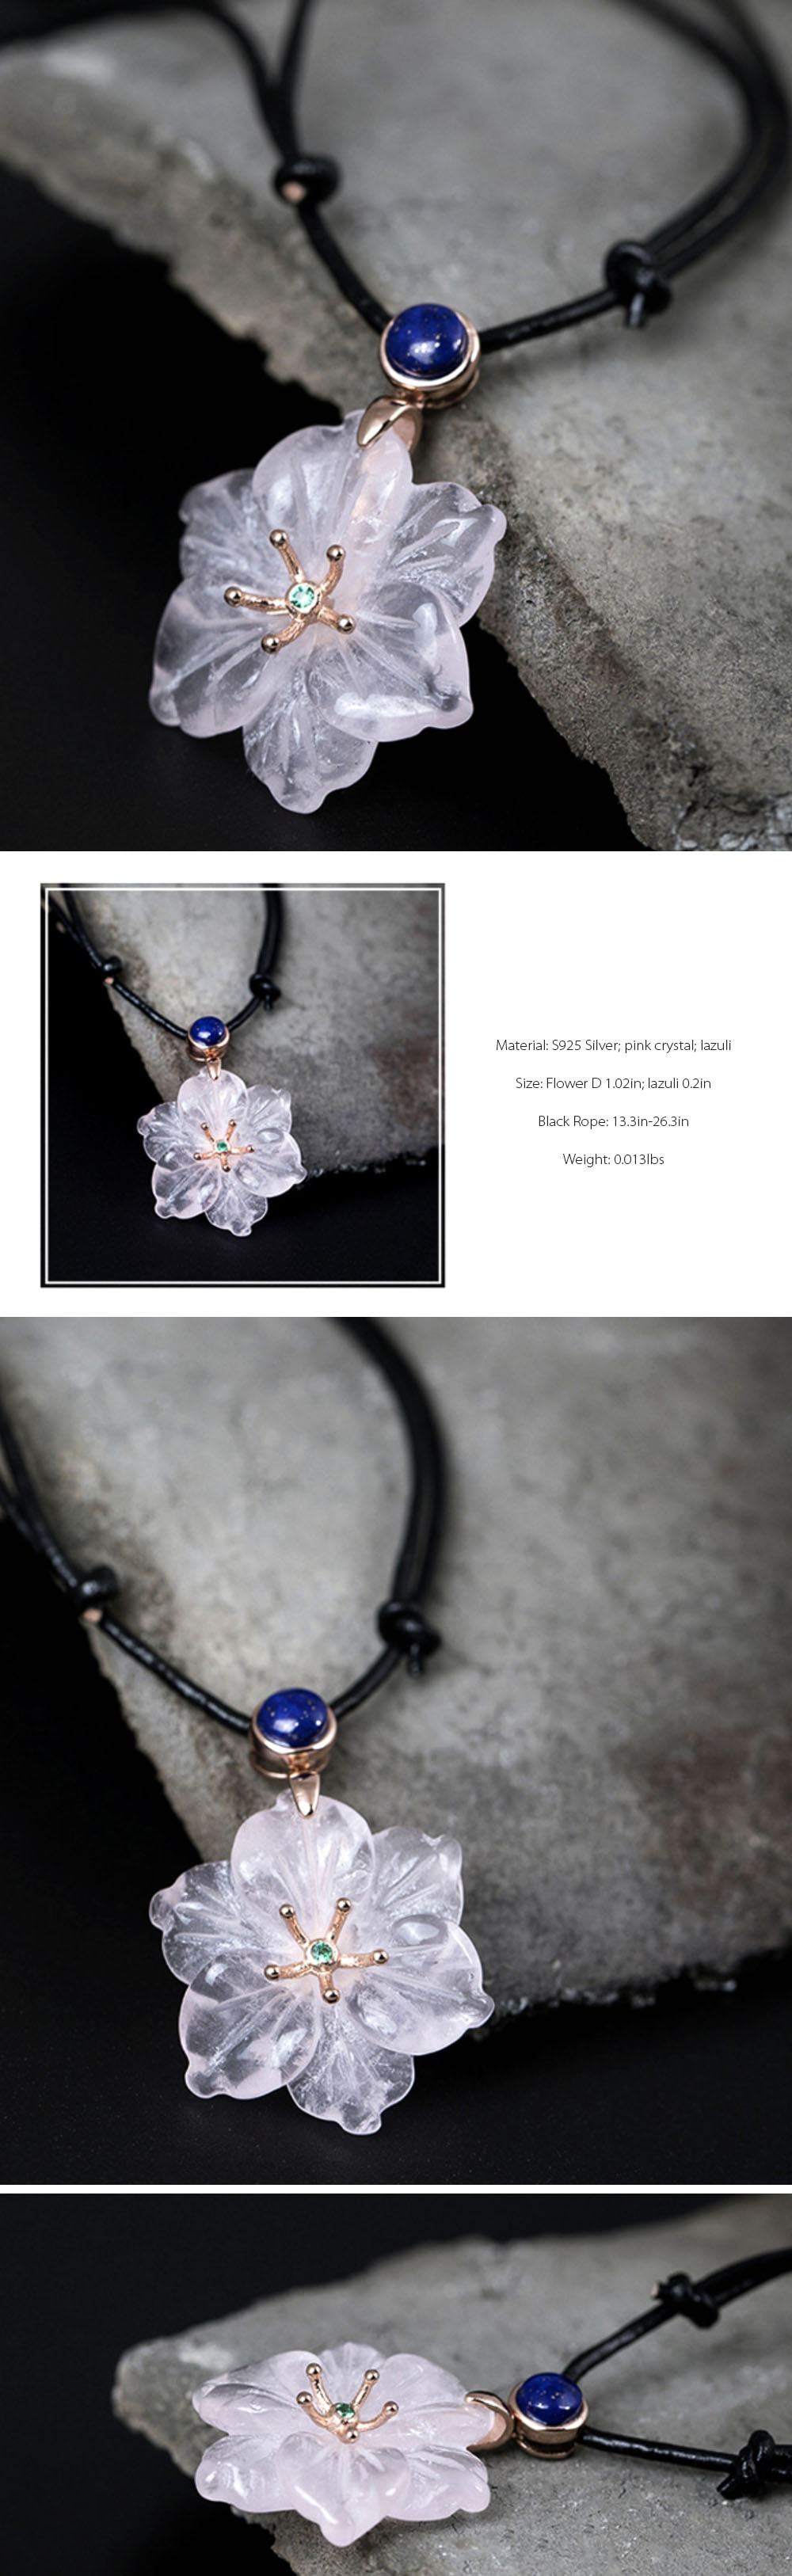 collection product necklace crystal pink blossom sakura detail cherry jewelry apollobox